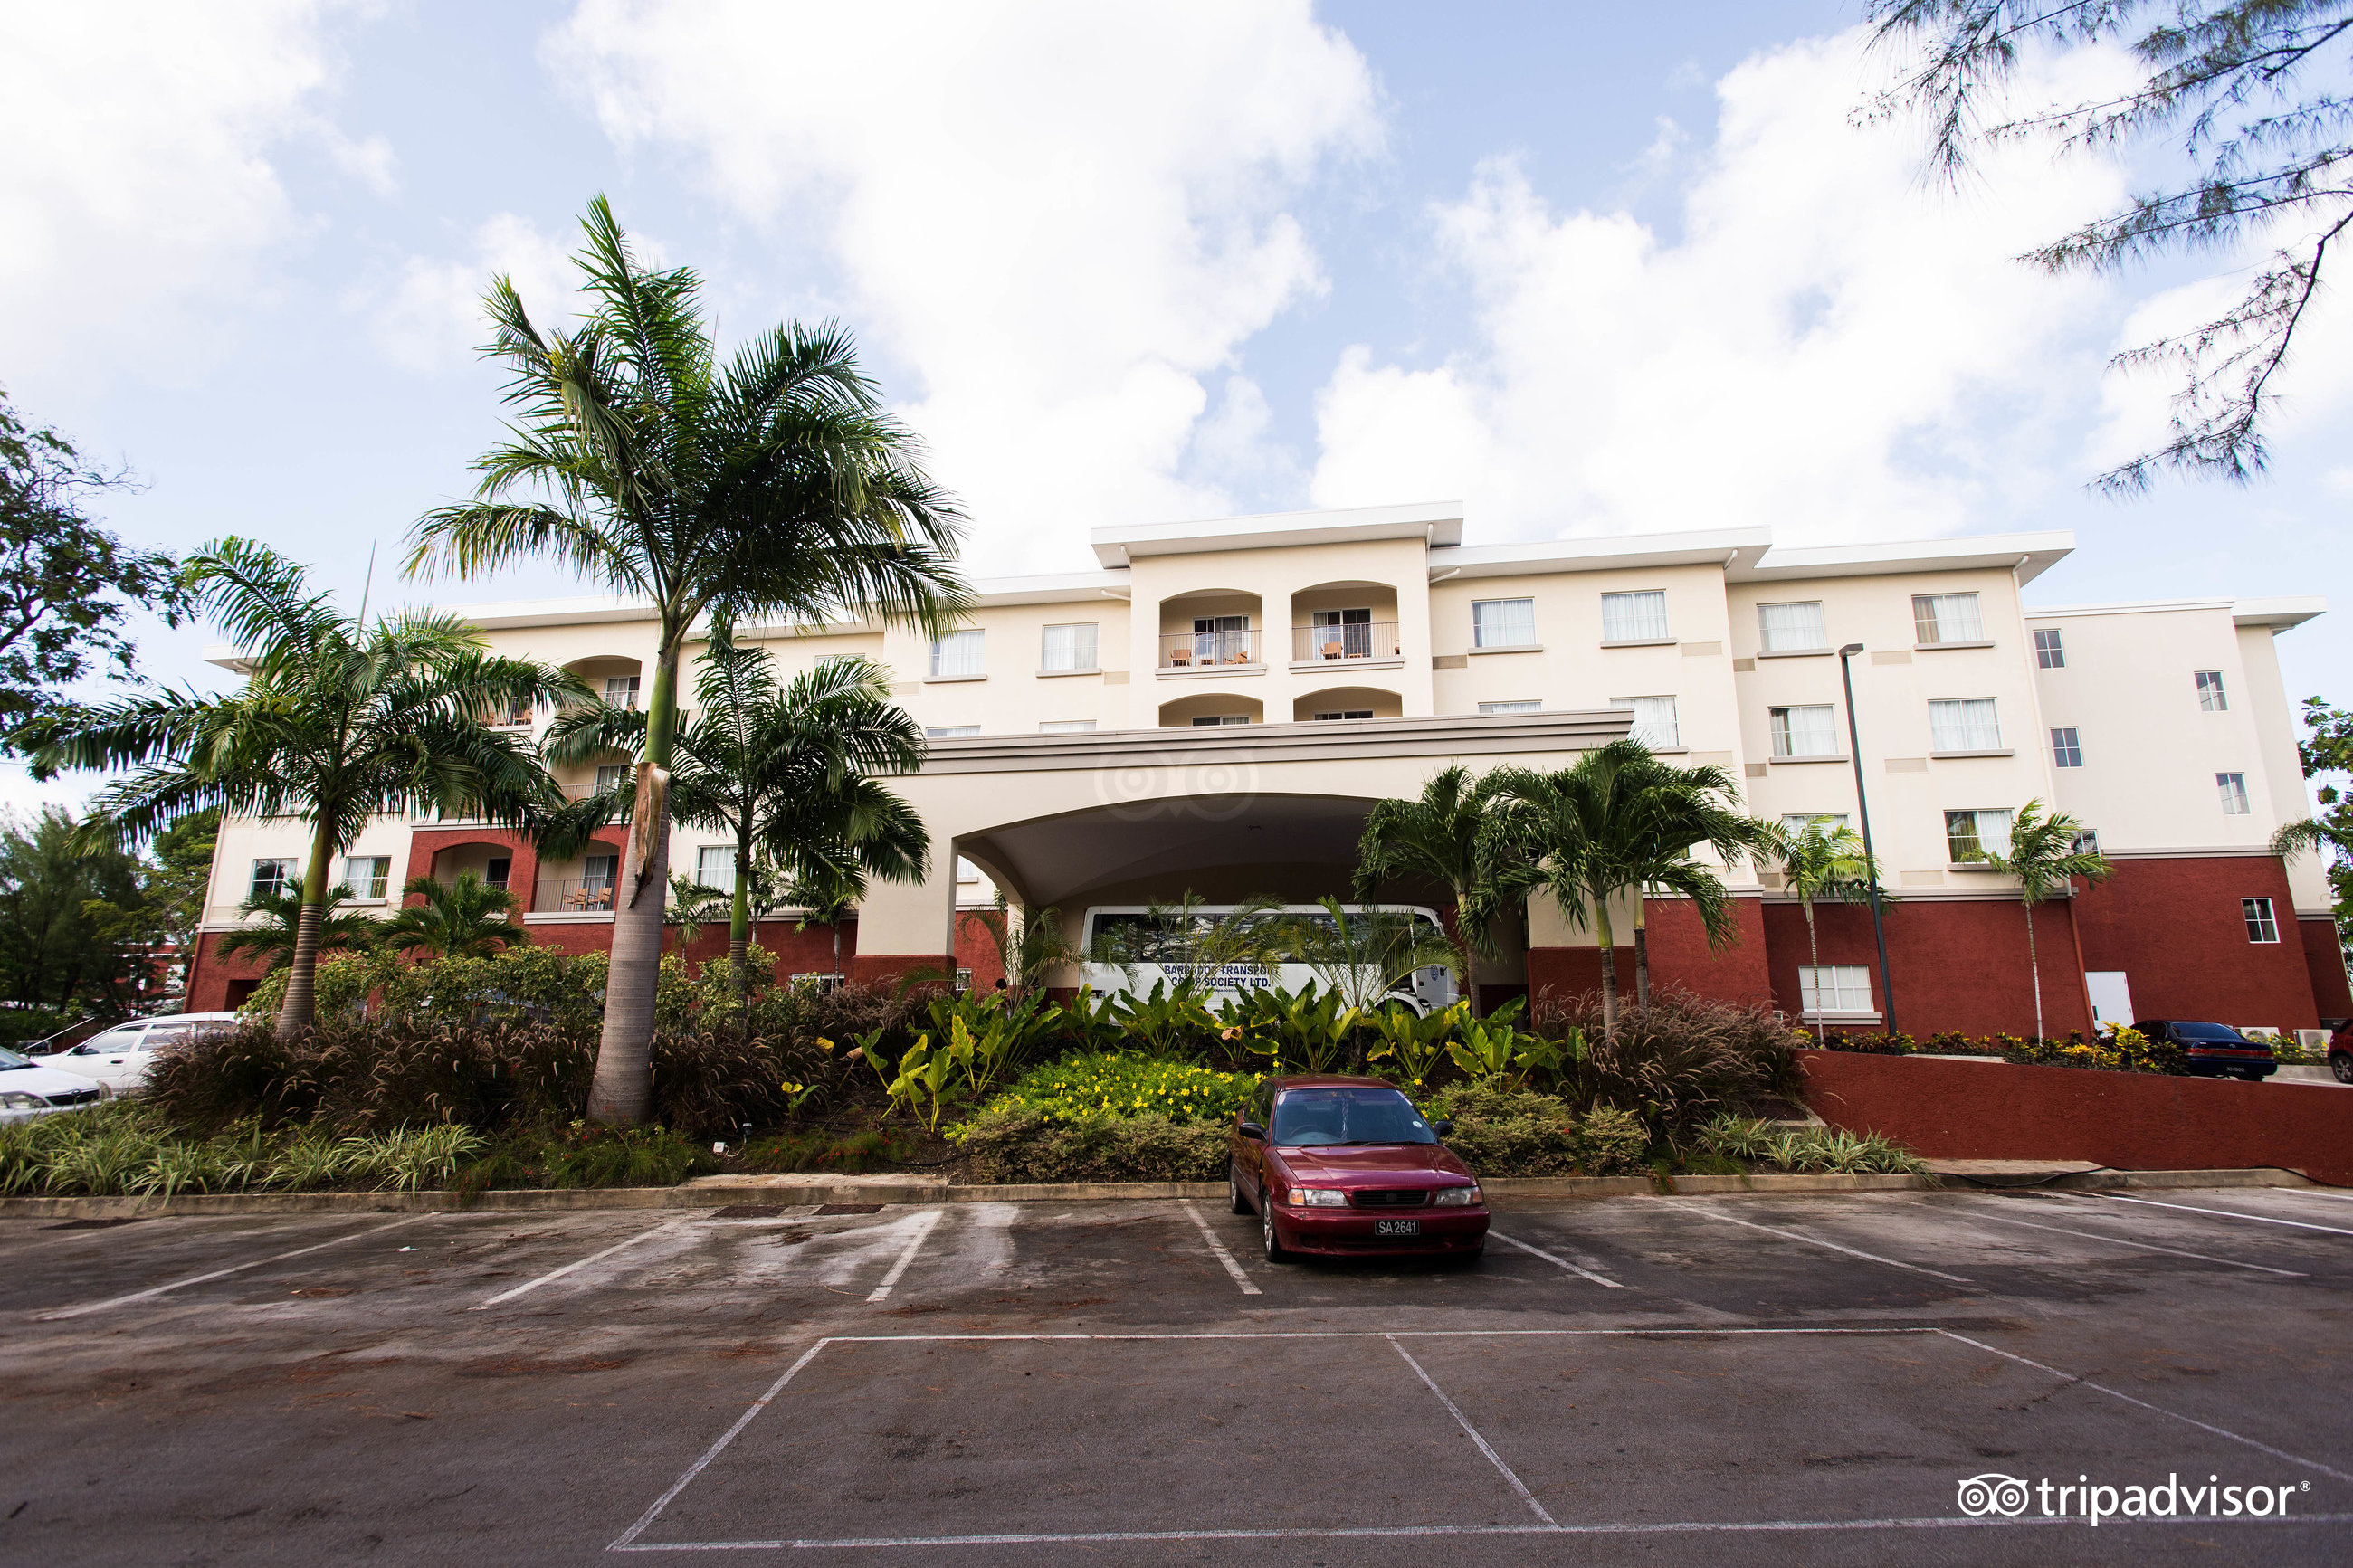 Cancun an all suites resort 2017 review family vacation critic - Courtyard Bridgetown Barbados 2018 Hotel Review Family Vacation Critic